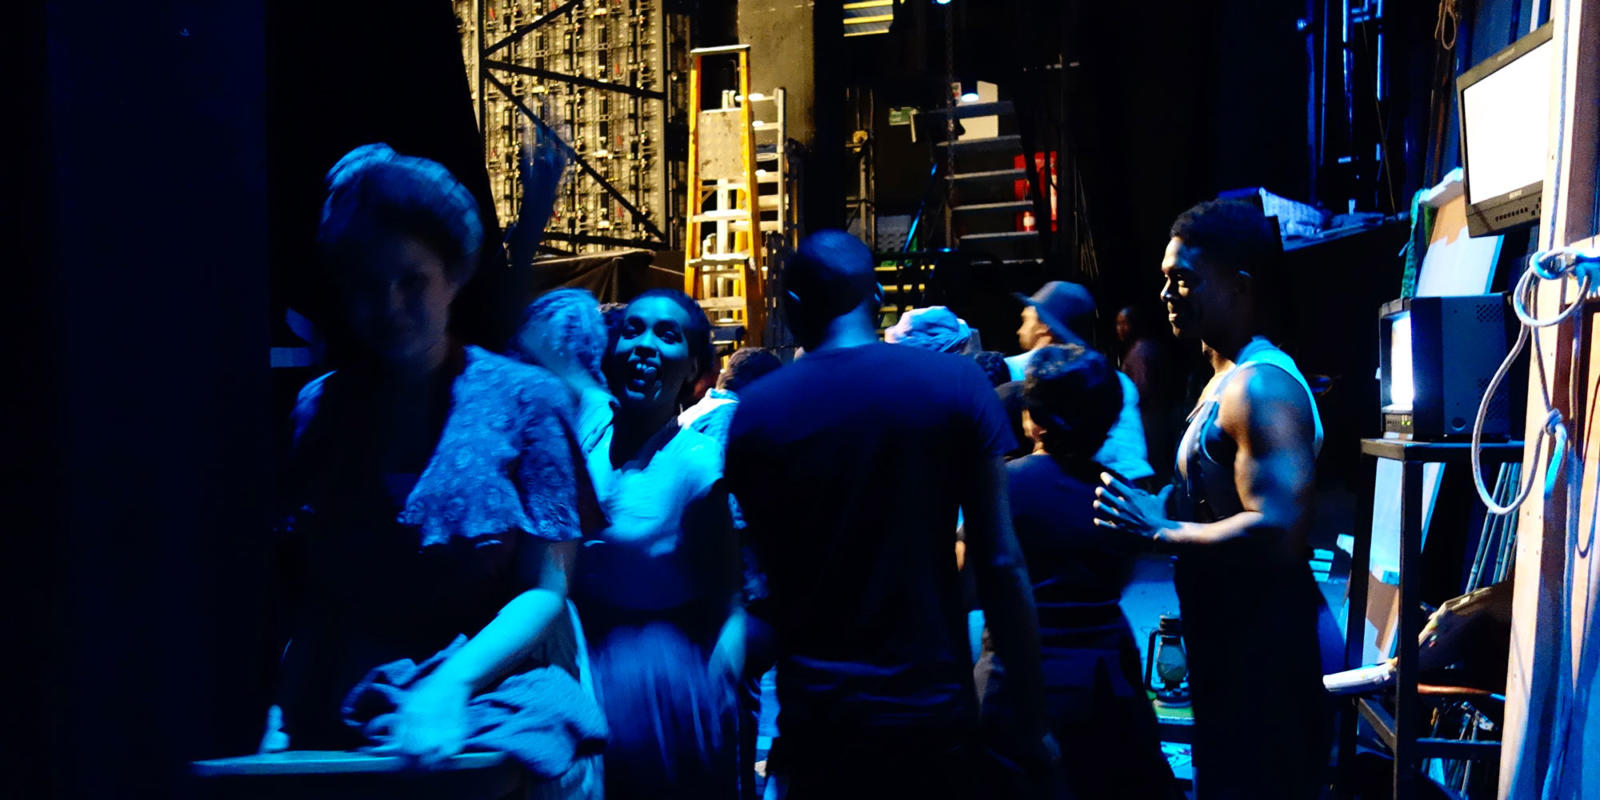 ENO Porgy and Bess: Rachel Oyawale, Nmon Ford and fellow cast mates between scenes backstage